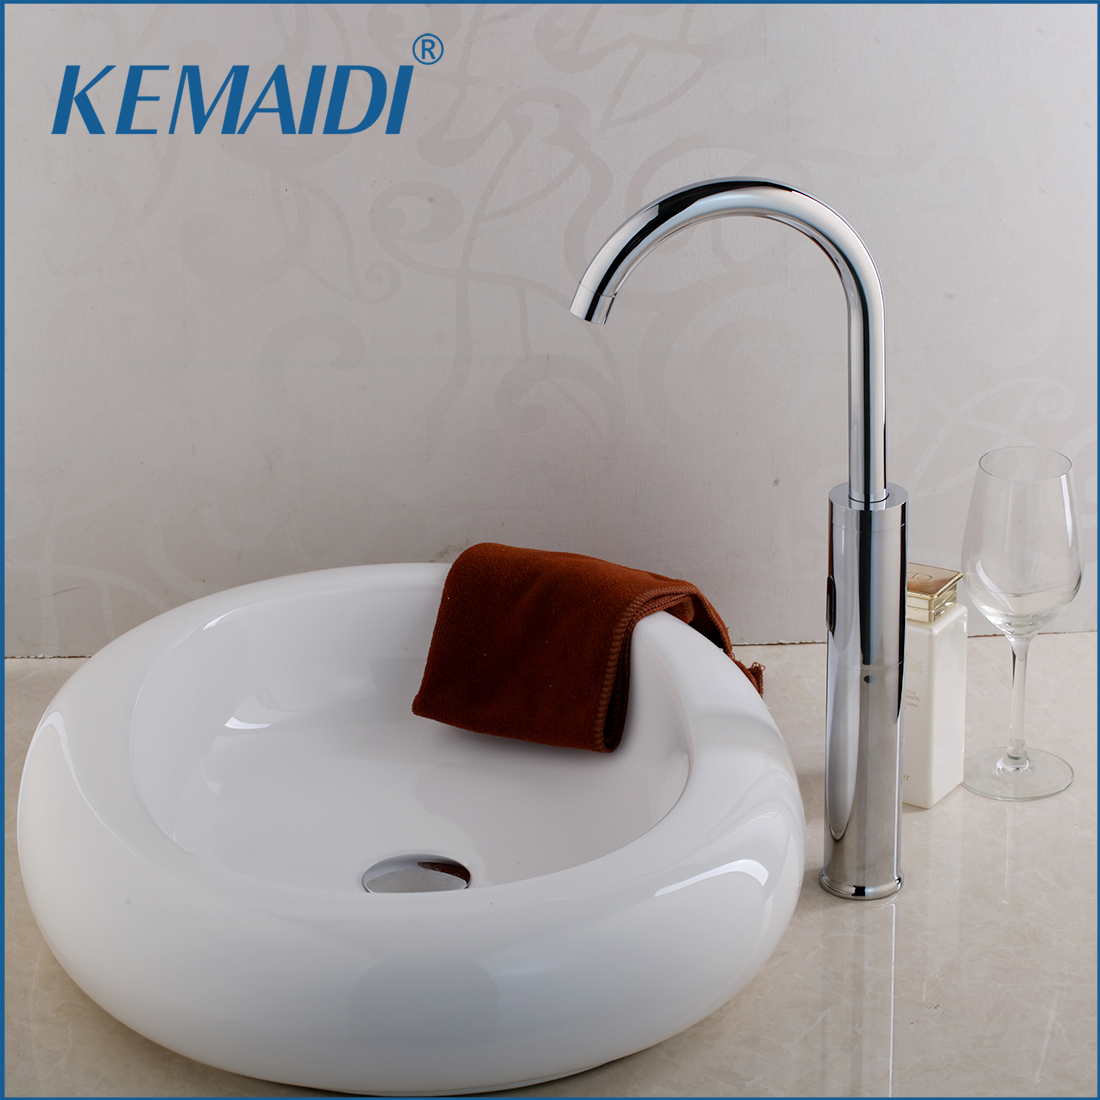 KEMAIDI Luxury Automatic Infrared Sink Hands Touchless Free Faucet Sensor Tap Glaze Basin Set Counter Top Basin Sink MixerKEMAIDI Luxury Automatic Infrared Sink Hands Touchless Free Faucet Sensor Tap Glaze Basin Set Counter Top Basin Sink Mixer